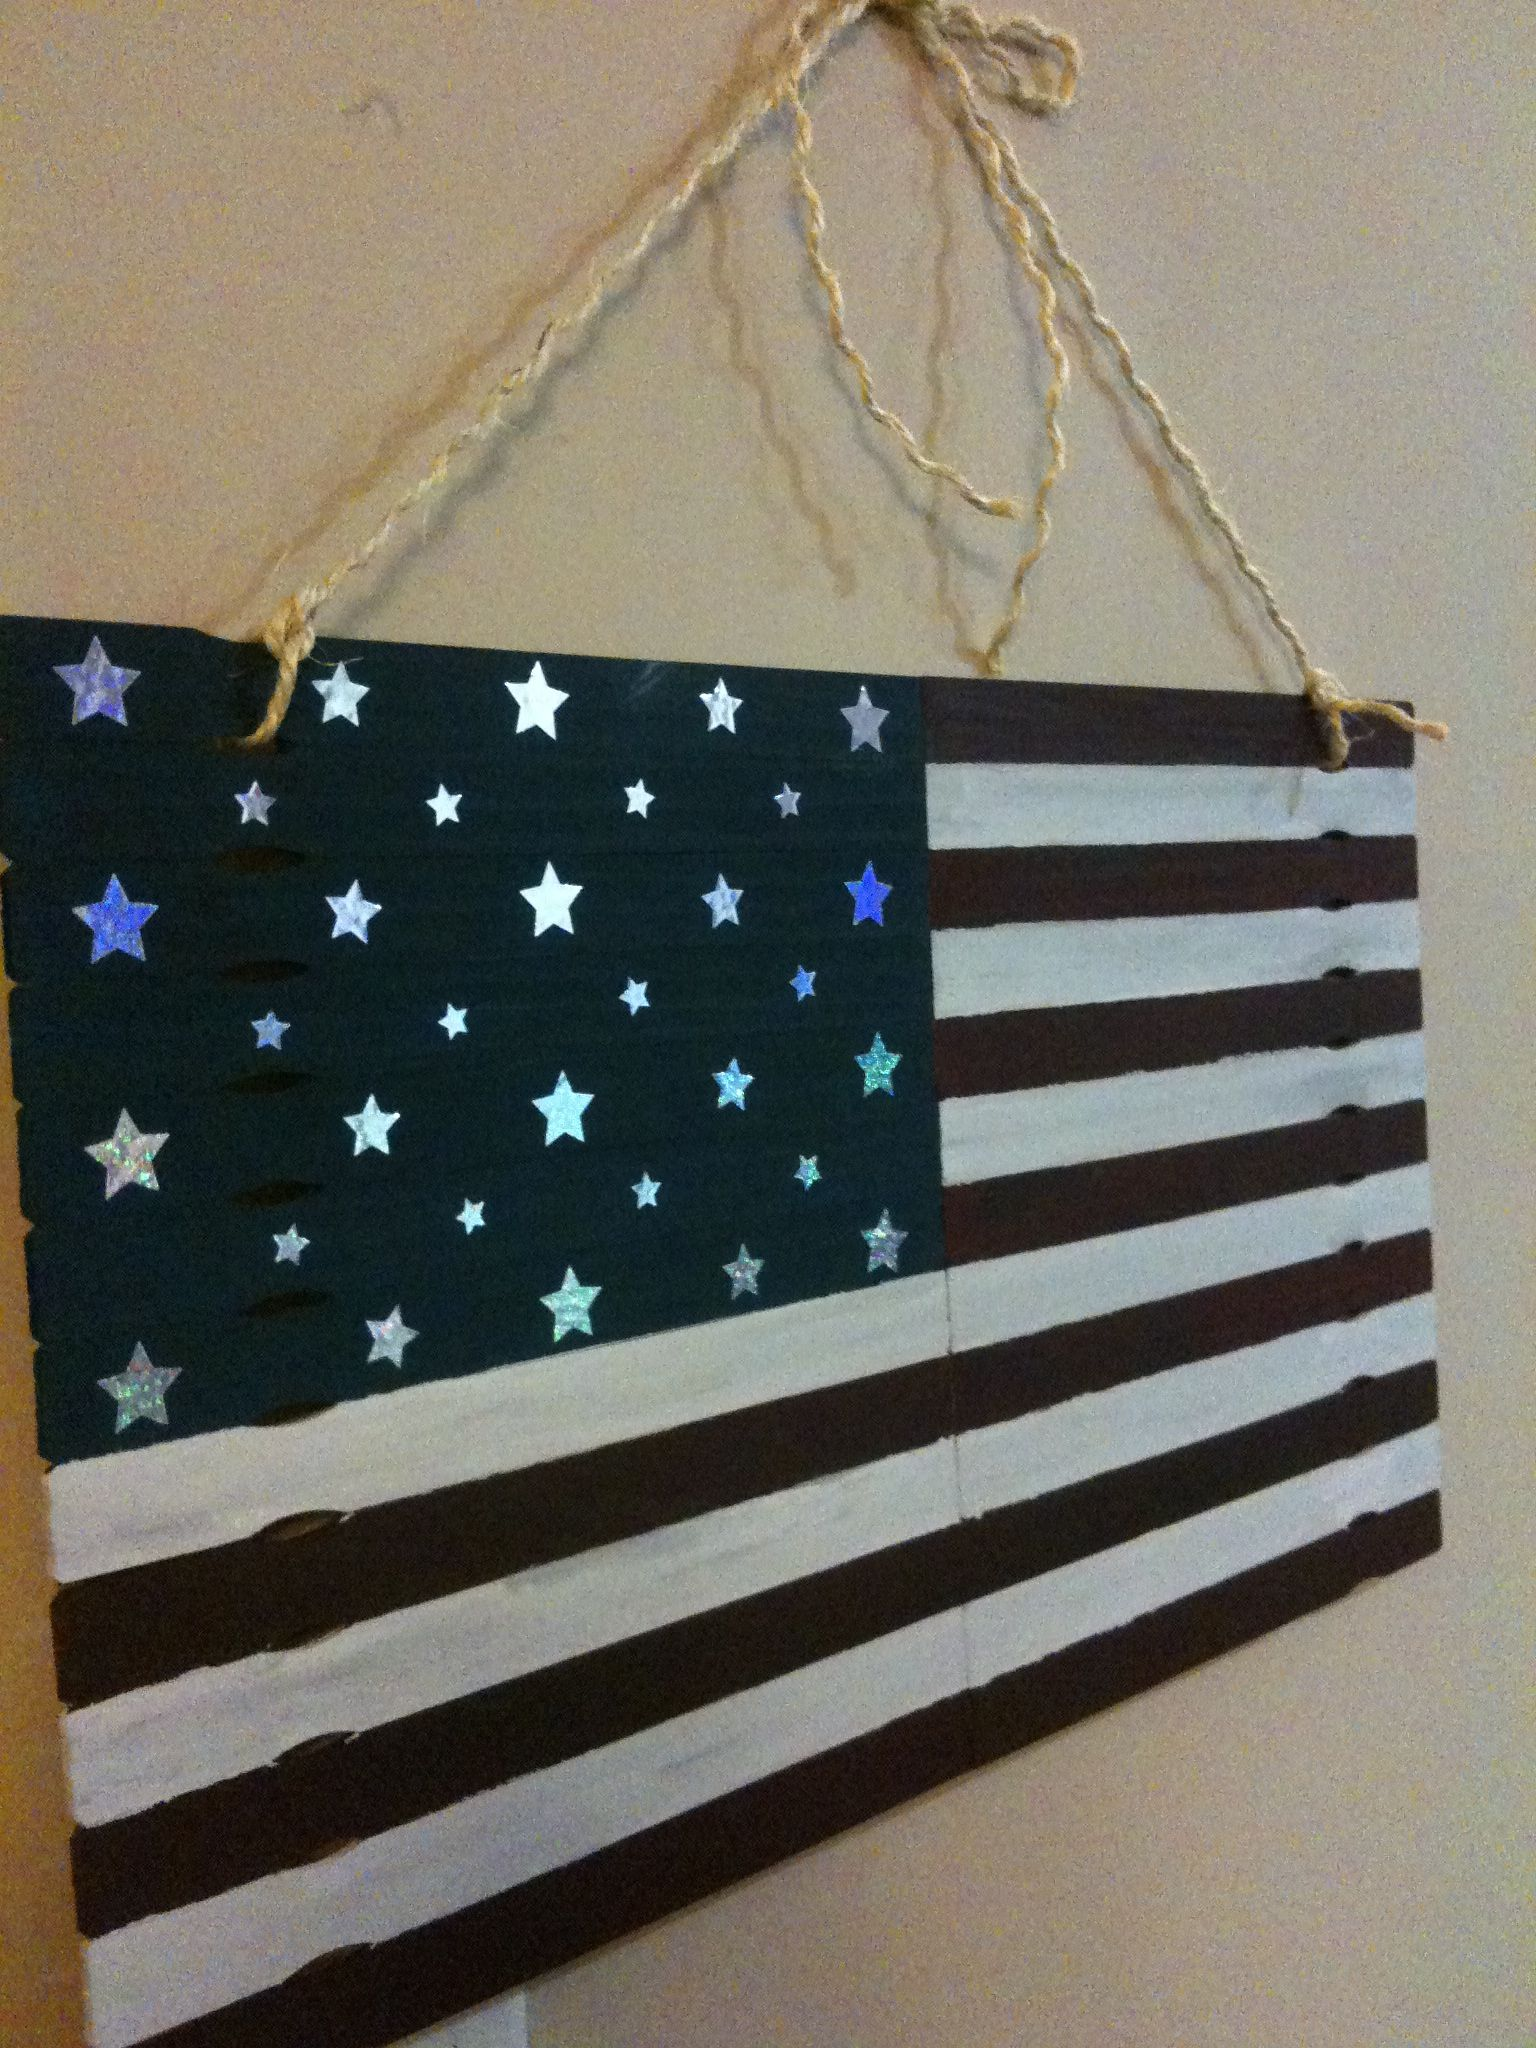 American flag made with free paint sticks from Home Depot